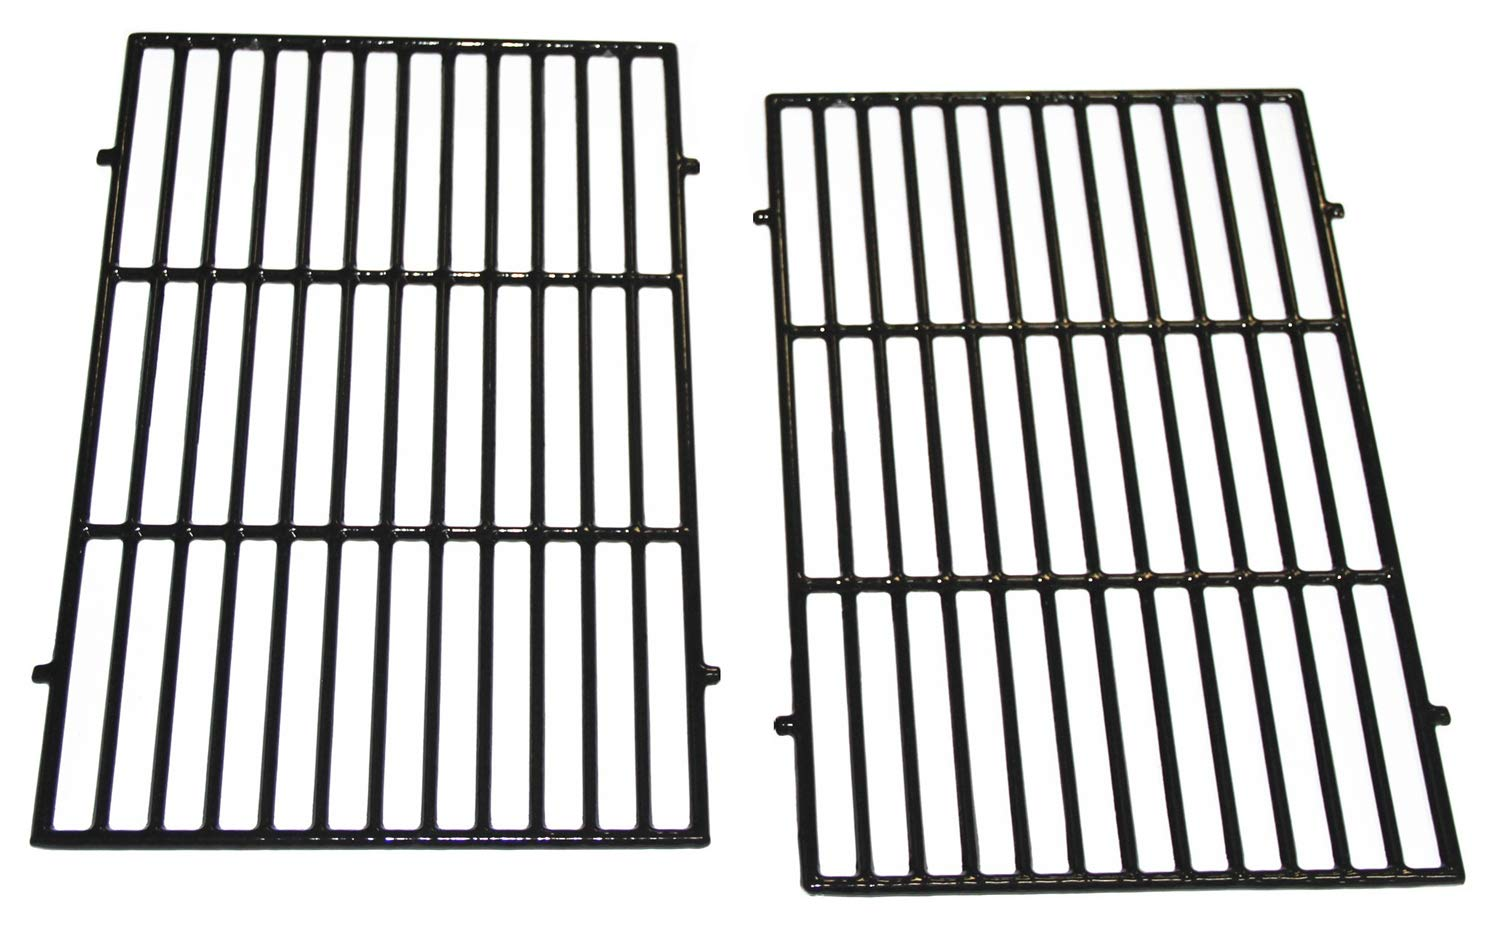 VICOOL Porcelain Cast Iron Grill Grates(17.5'' x 11.9'' x 0.5'') for Weber Spirit 300 Series, Spirit 700, Genesis Silver B/C, Genesis Gold B/C, Genesis 1000-5000, 7638 7639 7525 7526 7527, hy7638 by VICOOL